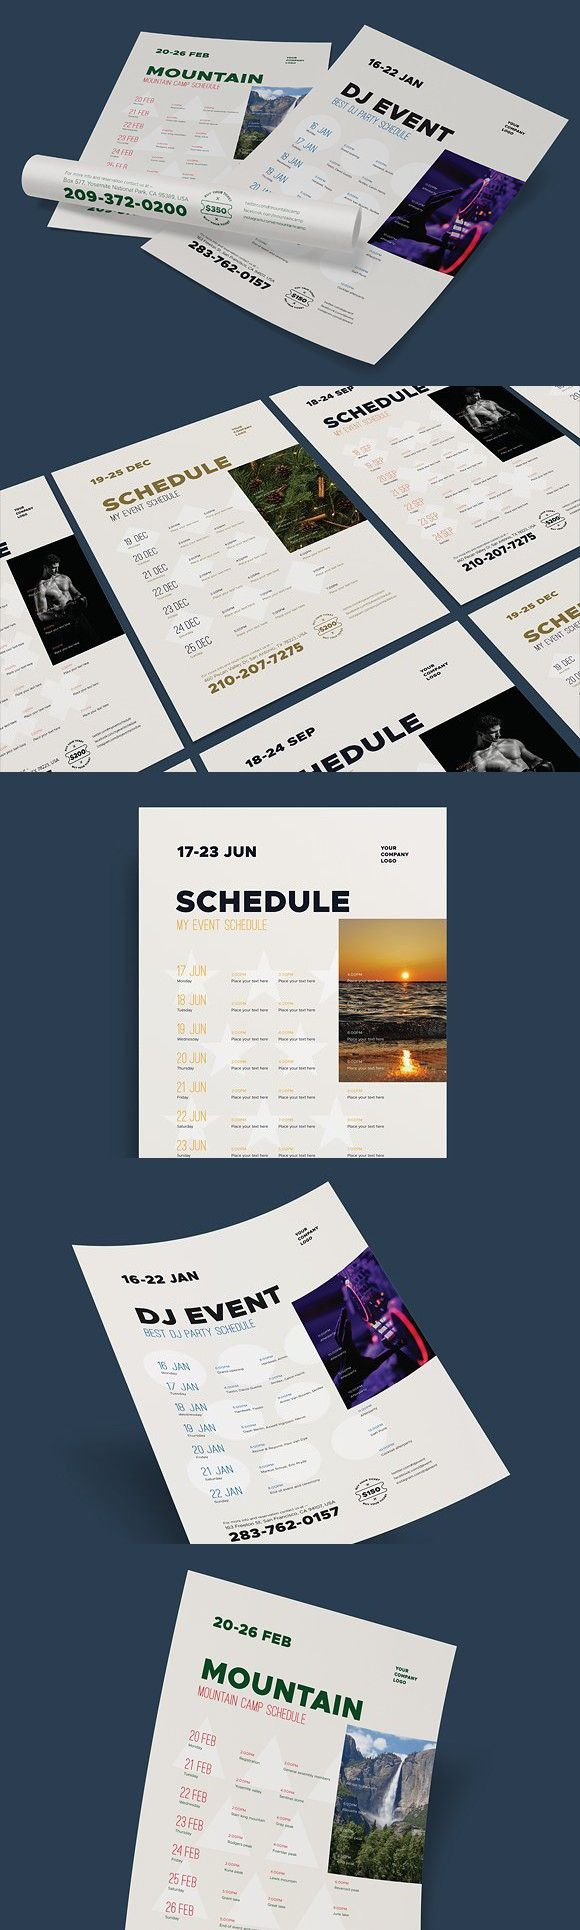 Schedule Event Poster Template Vol Flyer Templates